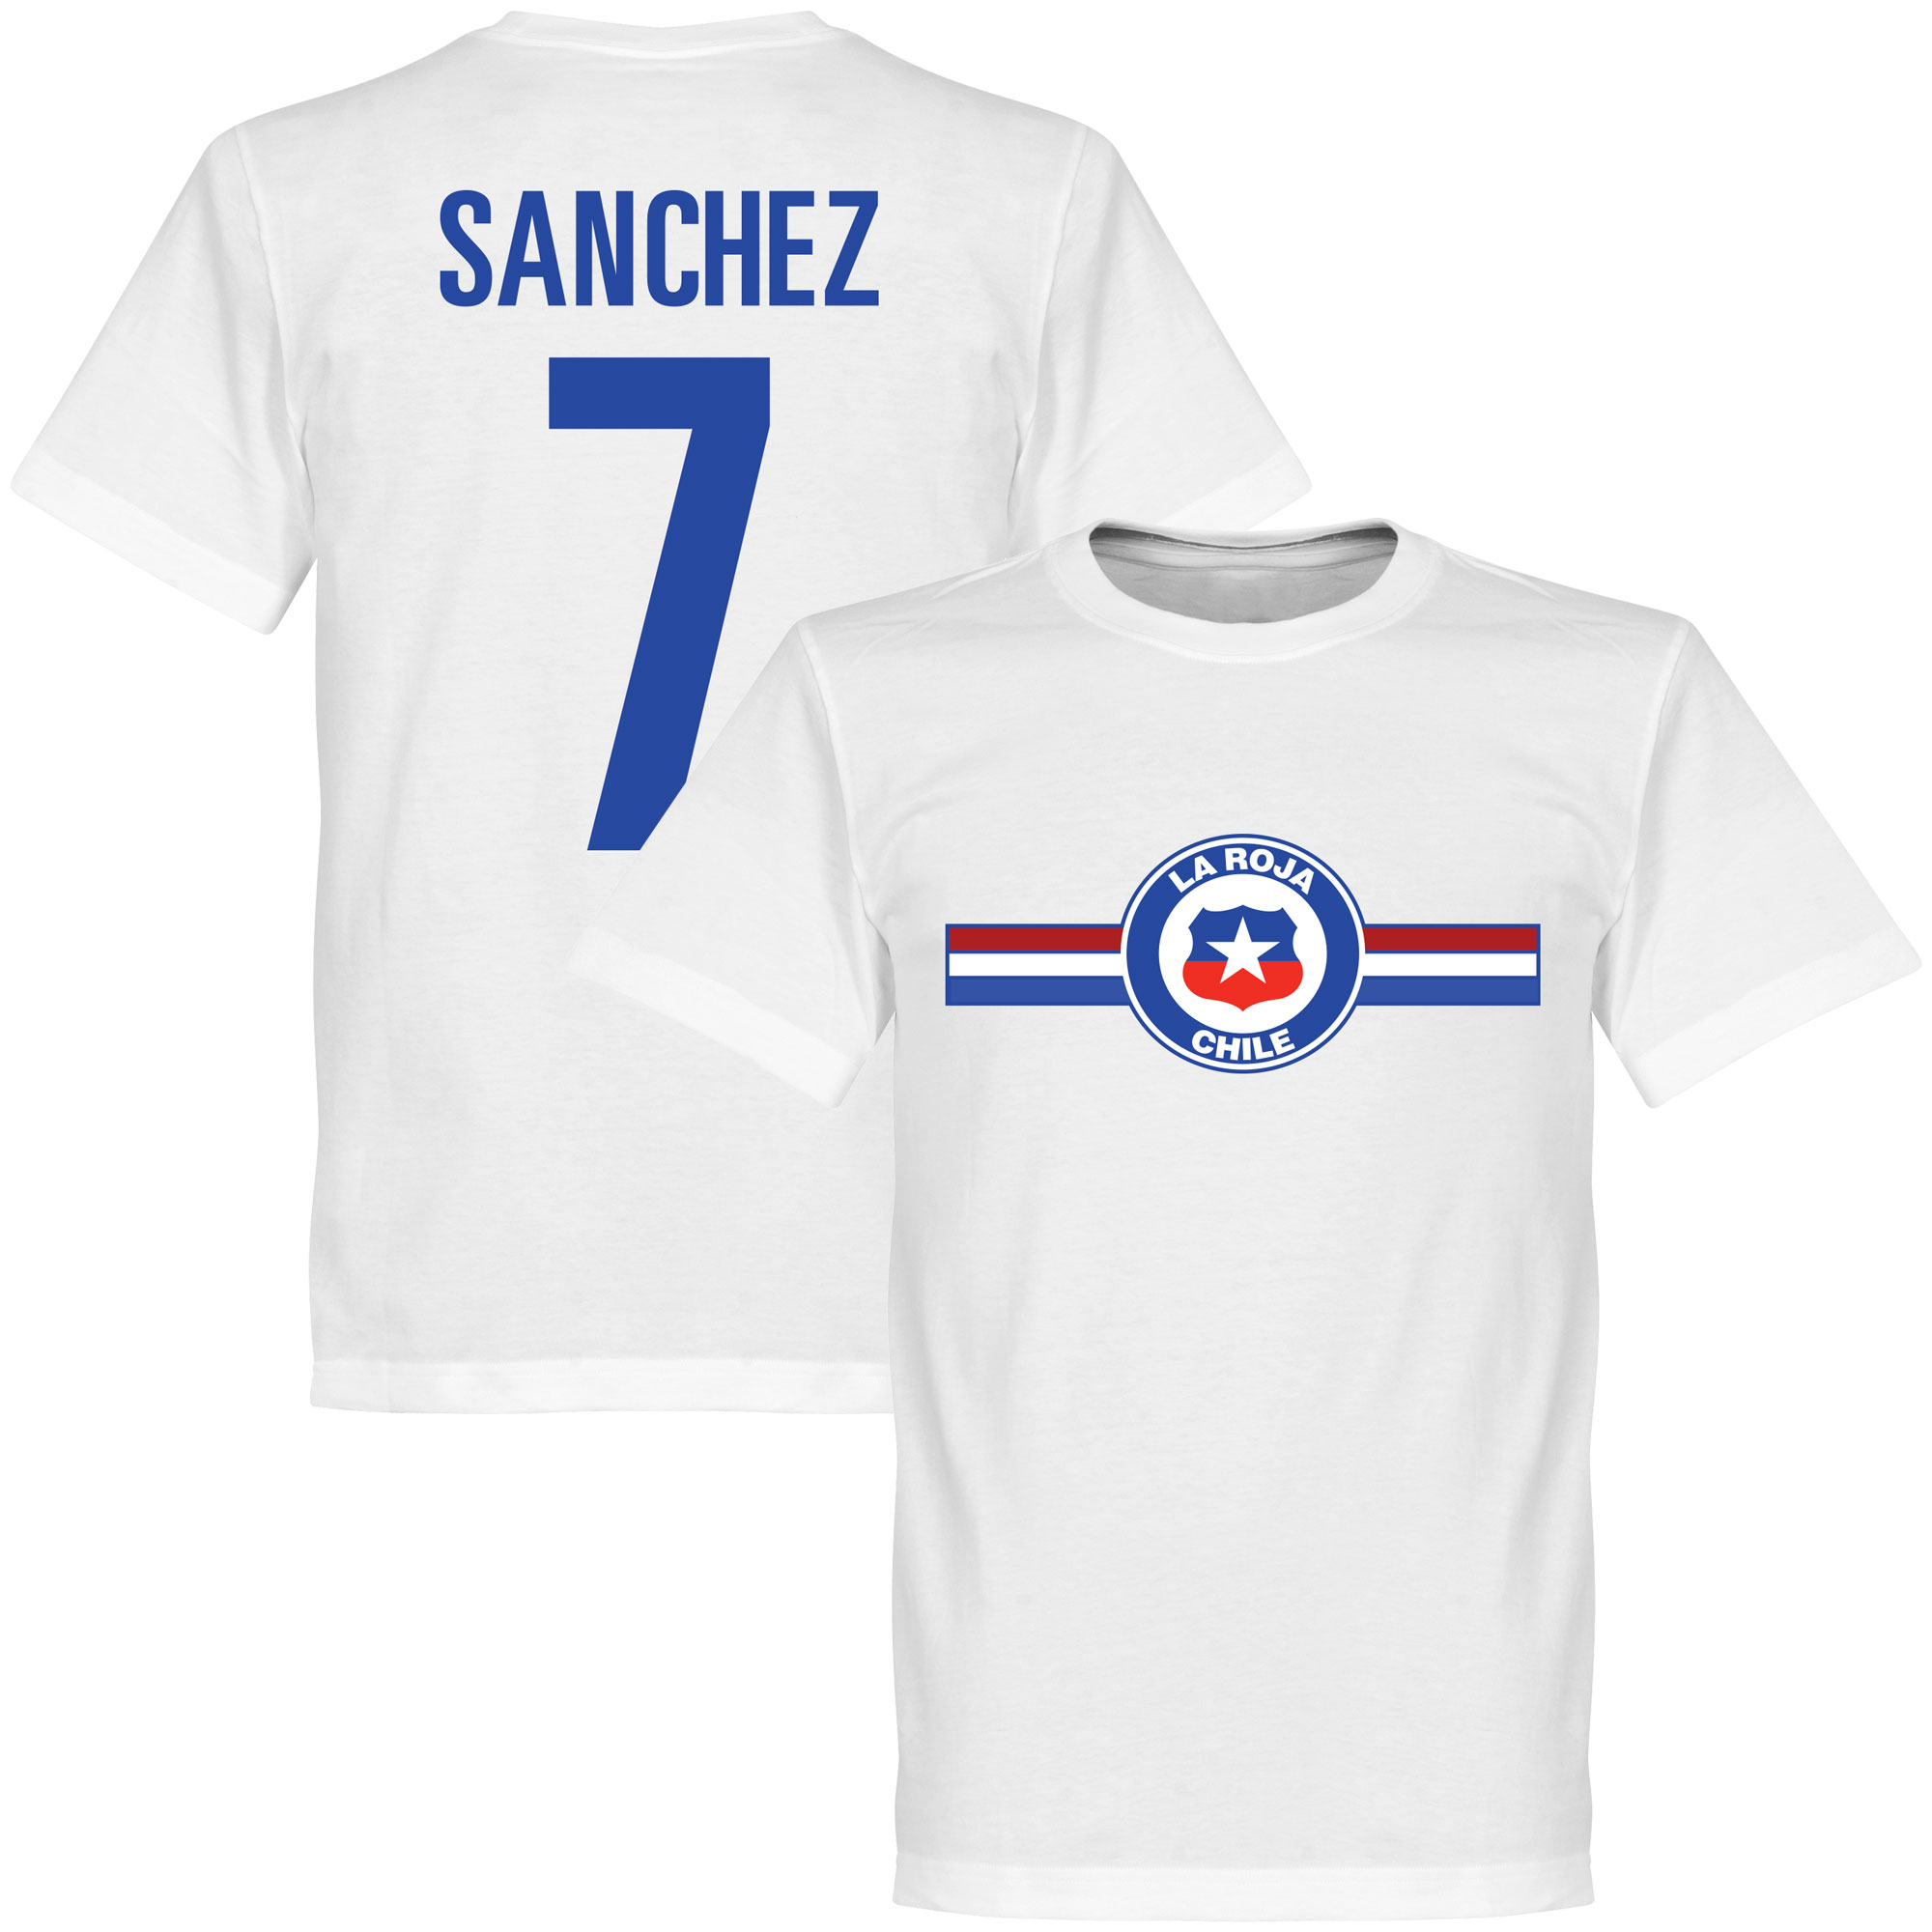 Chile Sanchez Tee - White - S